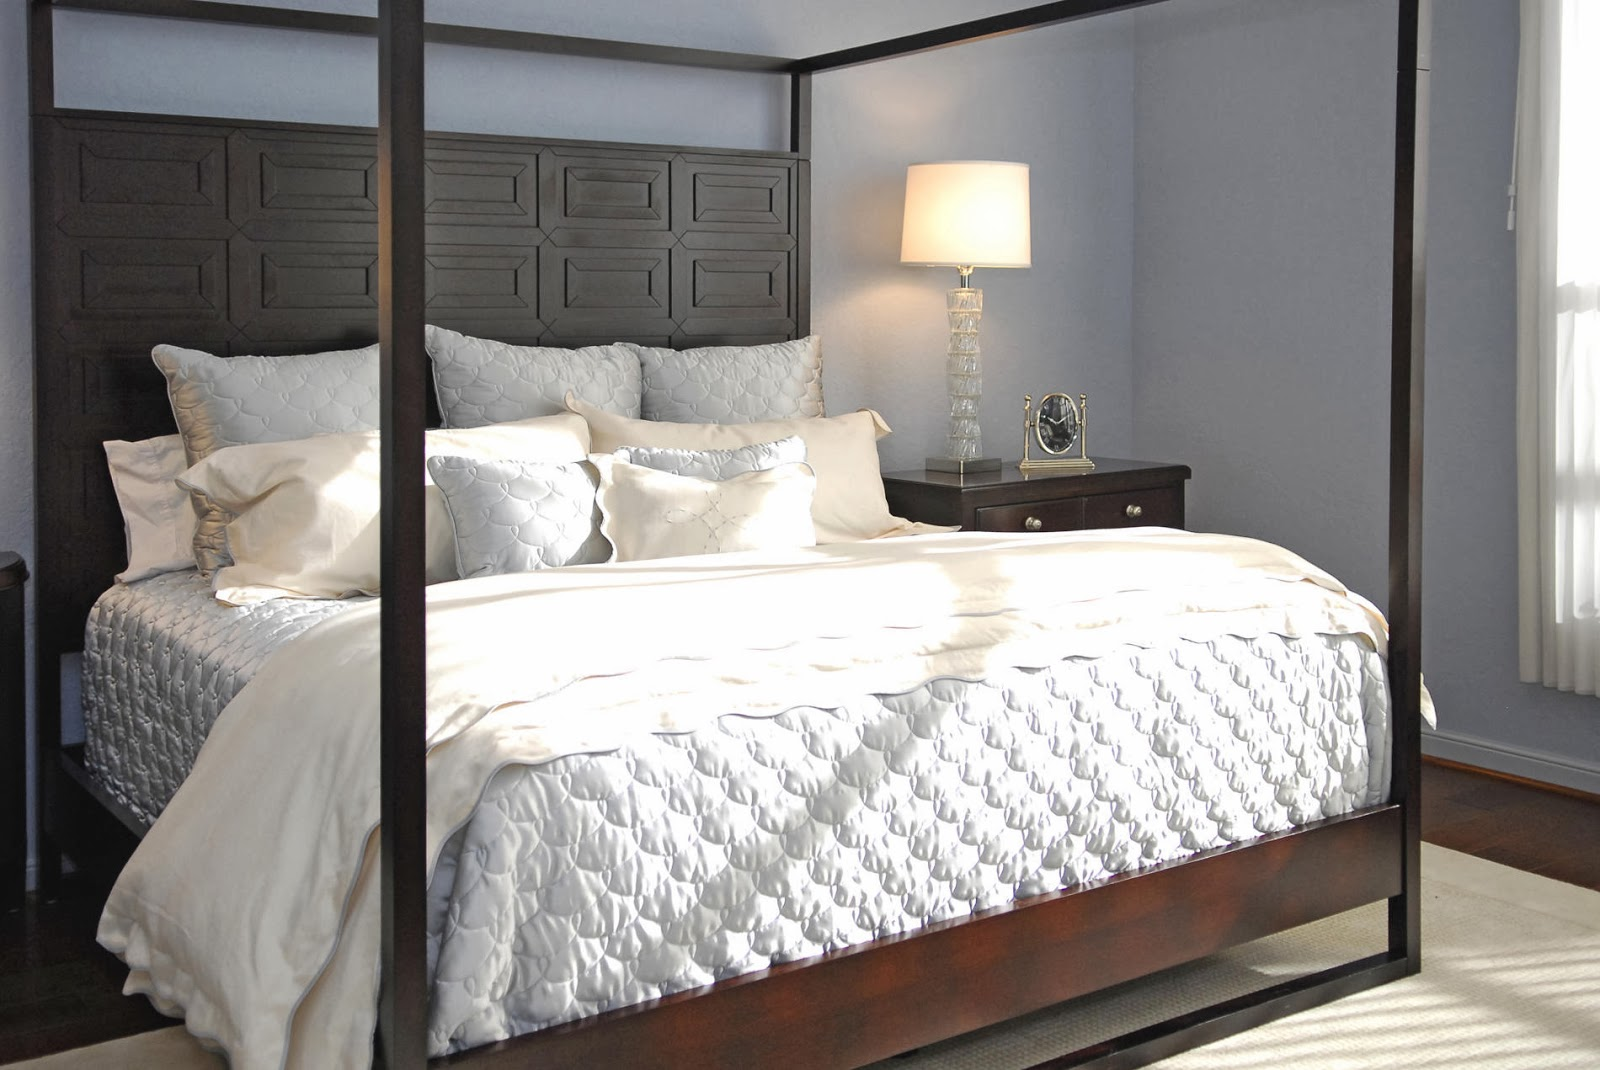 Modern White Pillar Bed Is Elegant In All White Upholstery And Dark